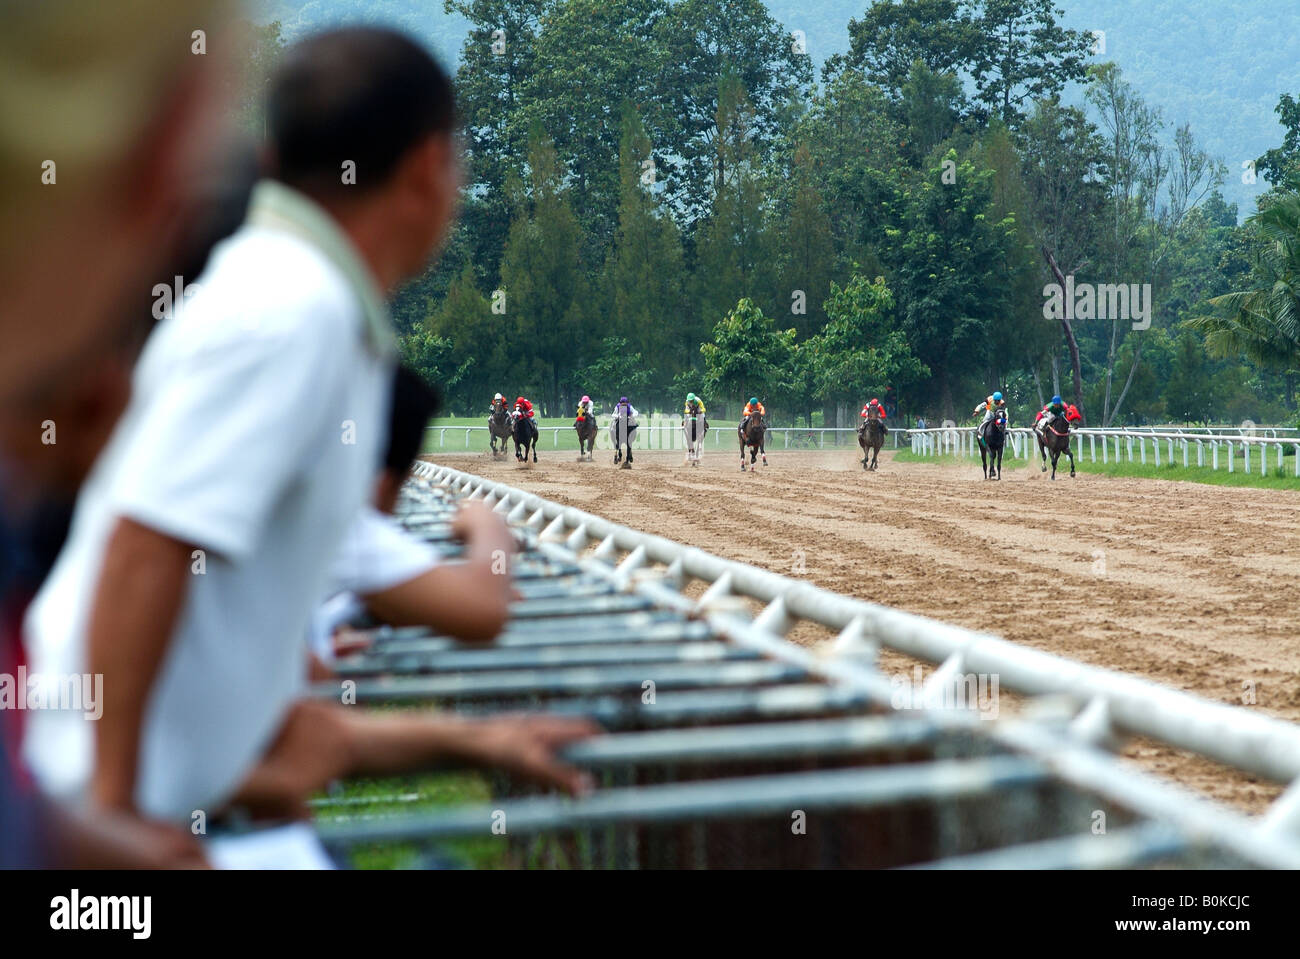 Spectators cheer during a horse race at the track in Chiang Mai, Thailand. - Stock Image